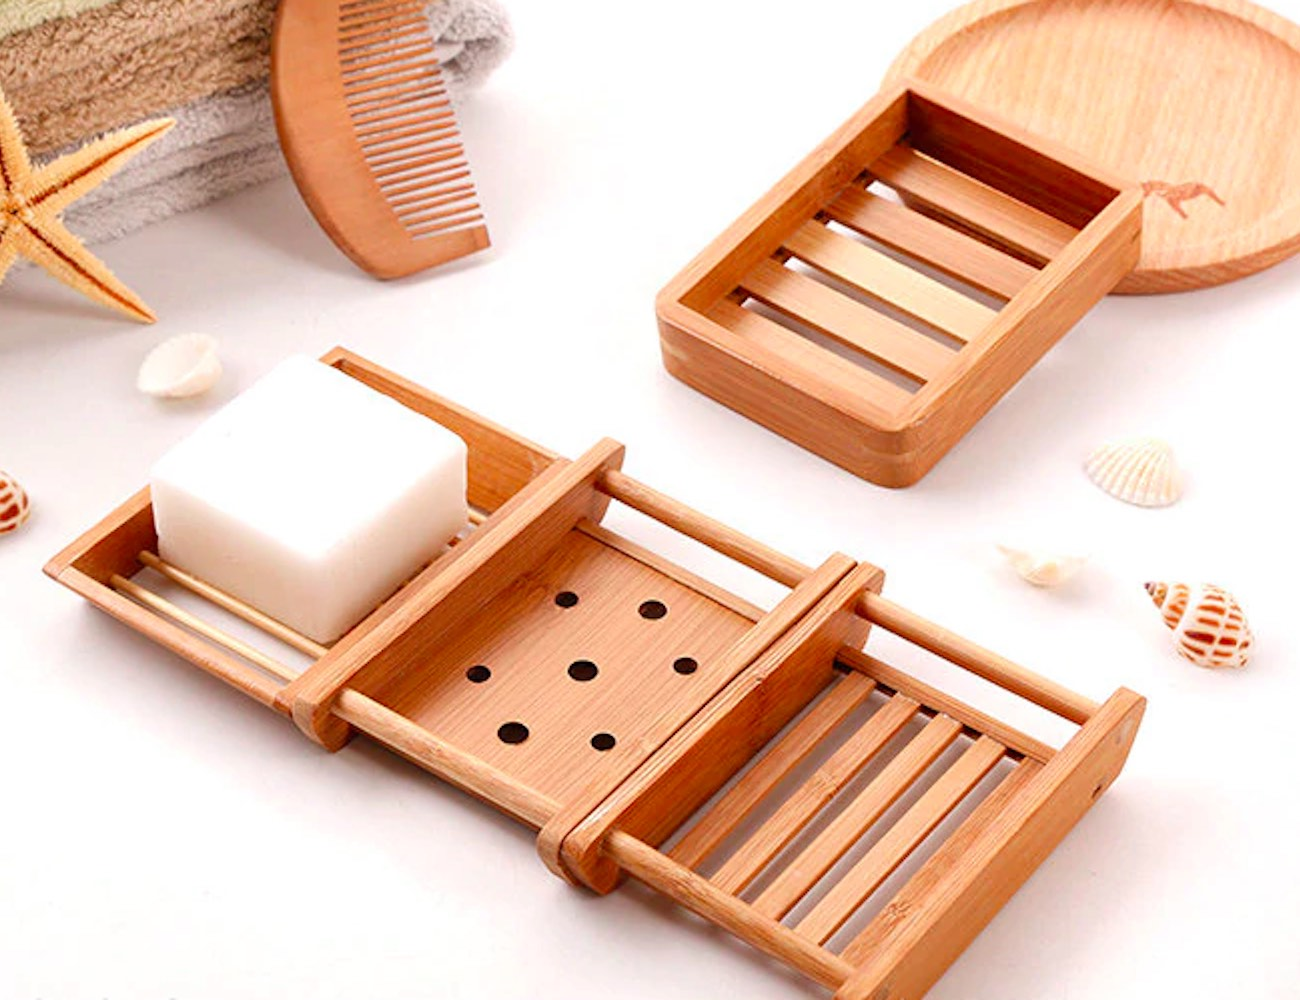 Minimalist Bamboo Self-Draining Soap Dishes get rid of excess water